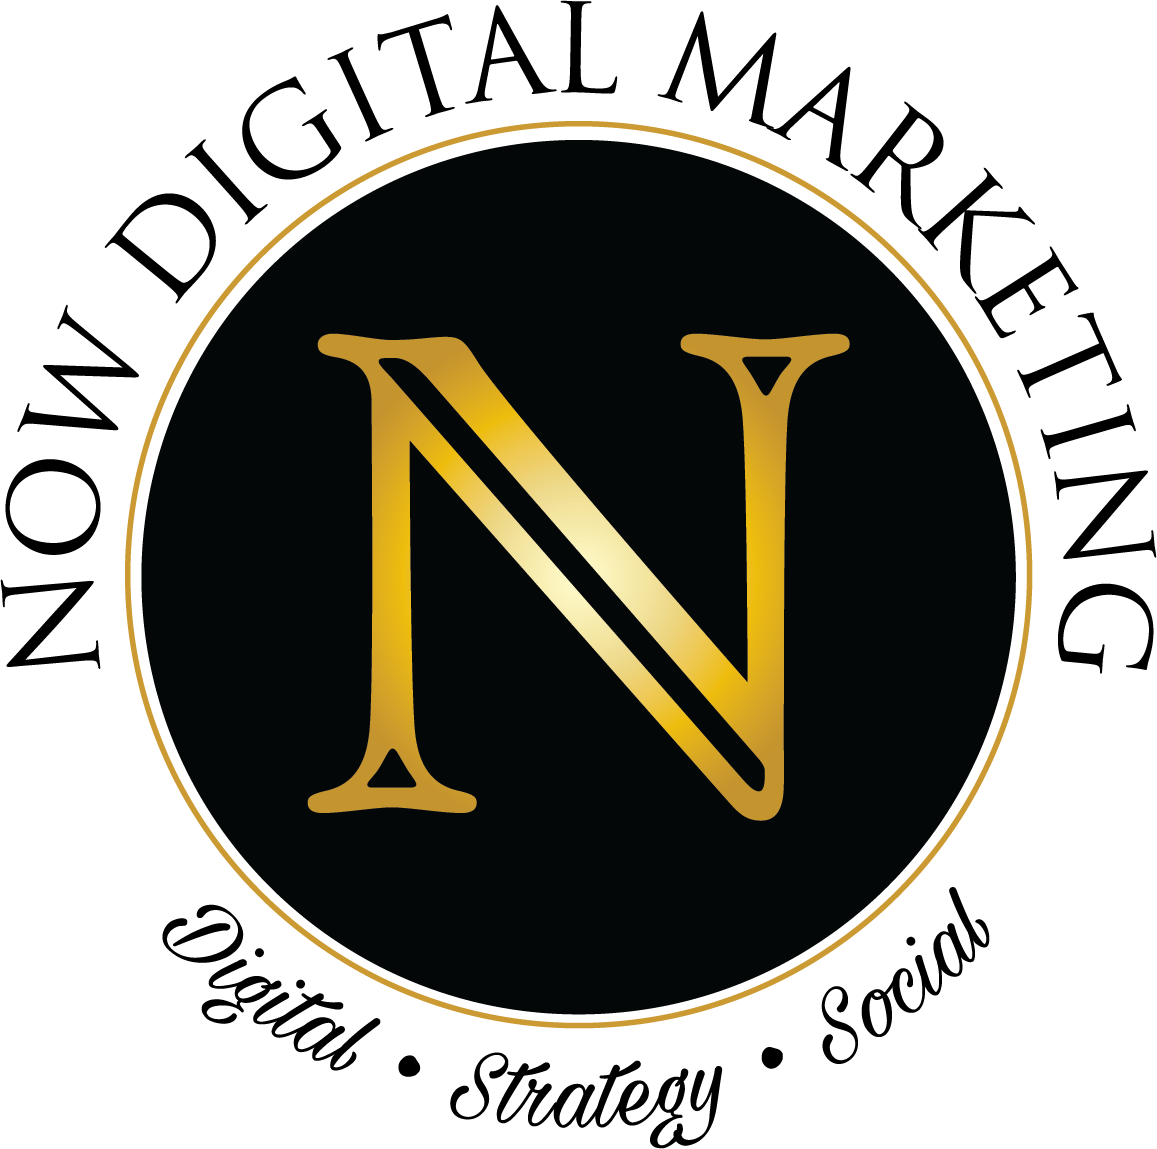 NOW Digital Marketing